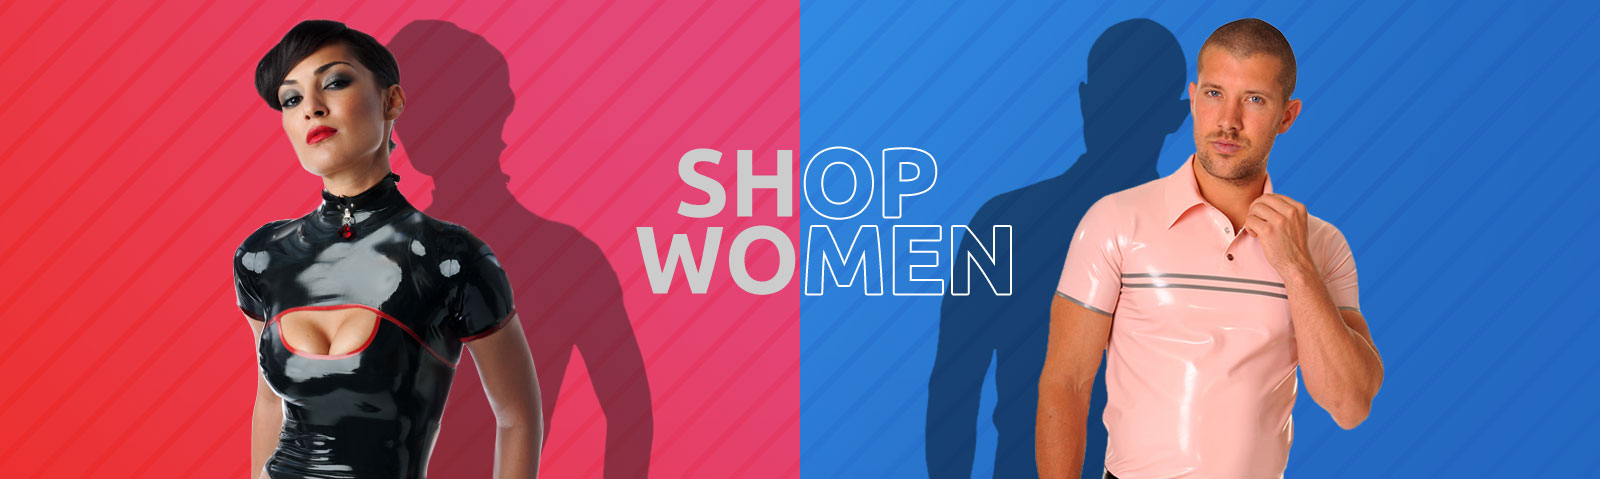 Shop Women/Men